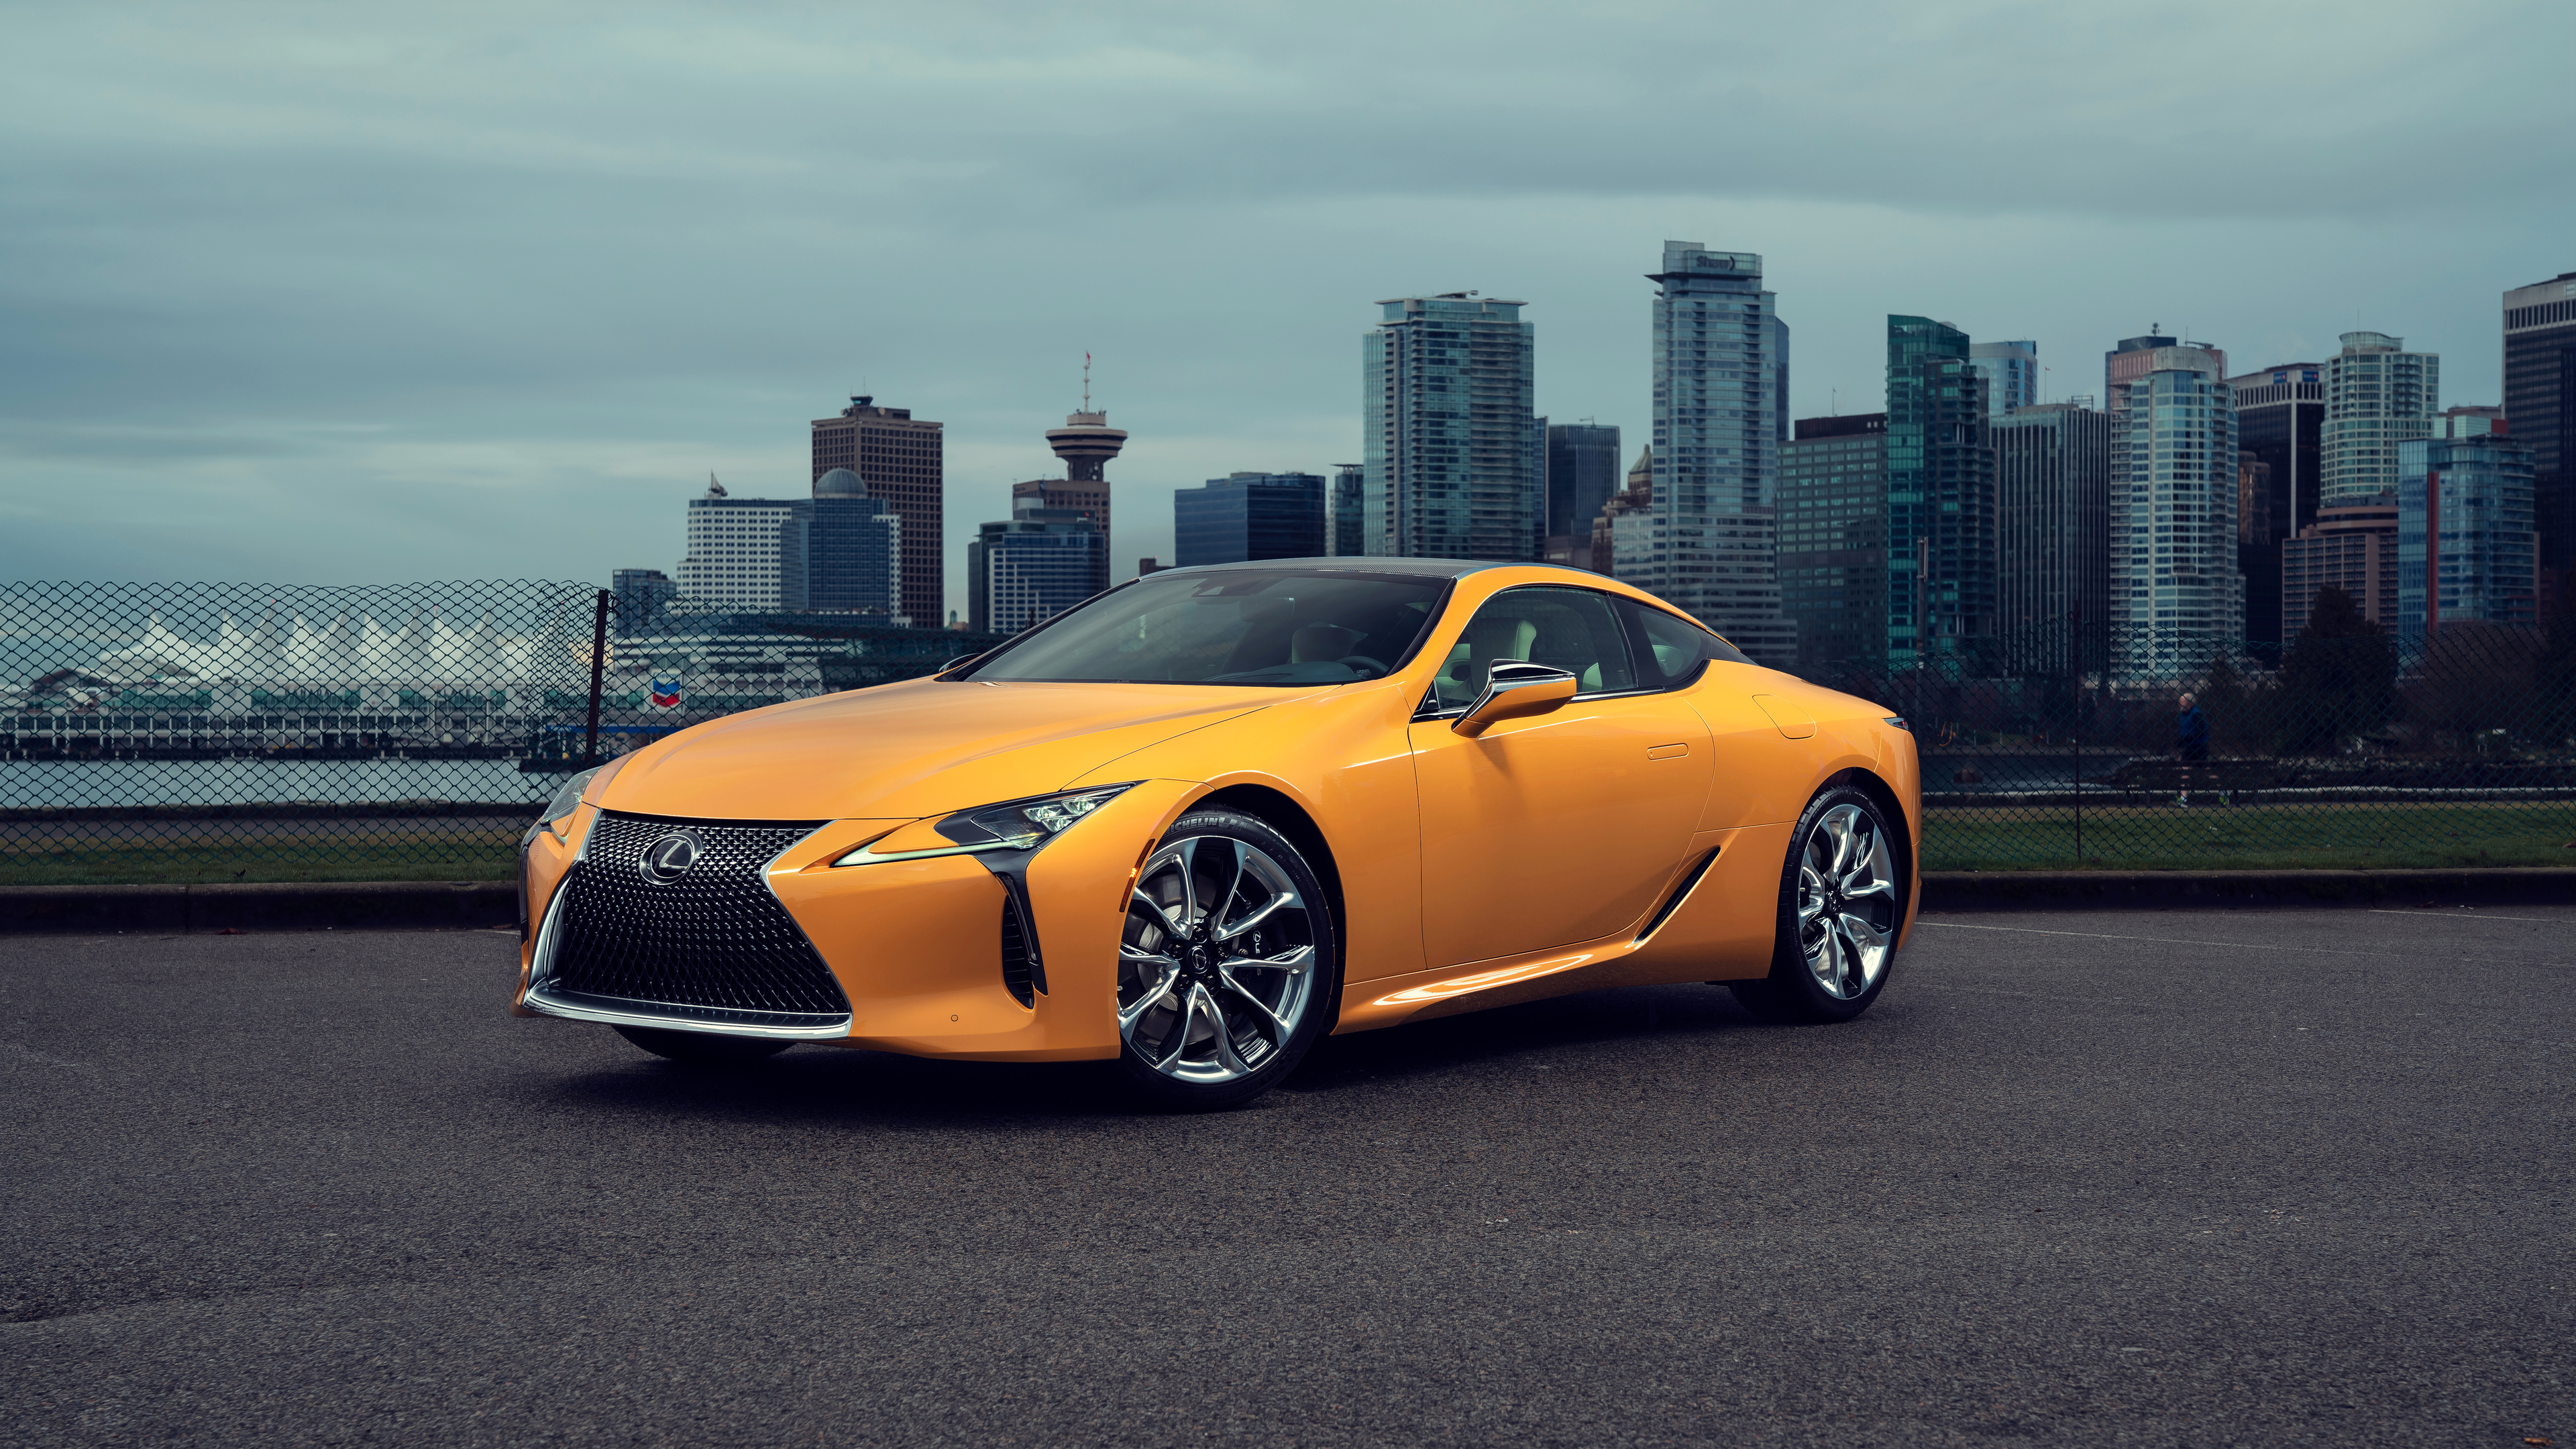 8k 2019 lexus lc 500 4k 1554245187 - 8k 2019 Lexus LC 500 4k - lexus wallpapers, lexus lc 500 wallpapers, hd-wallpapers, 8k wallpapers, 5k wallpapers, 4k-wallpapers, 2018 cars wallpapers